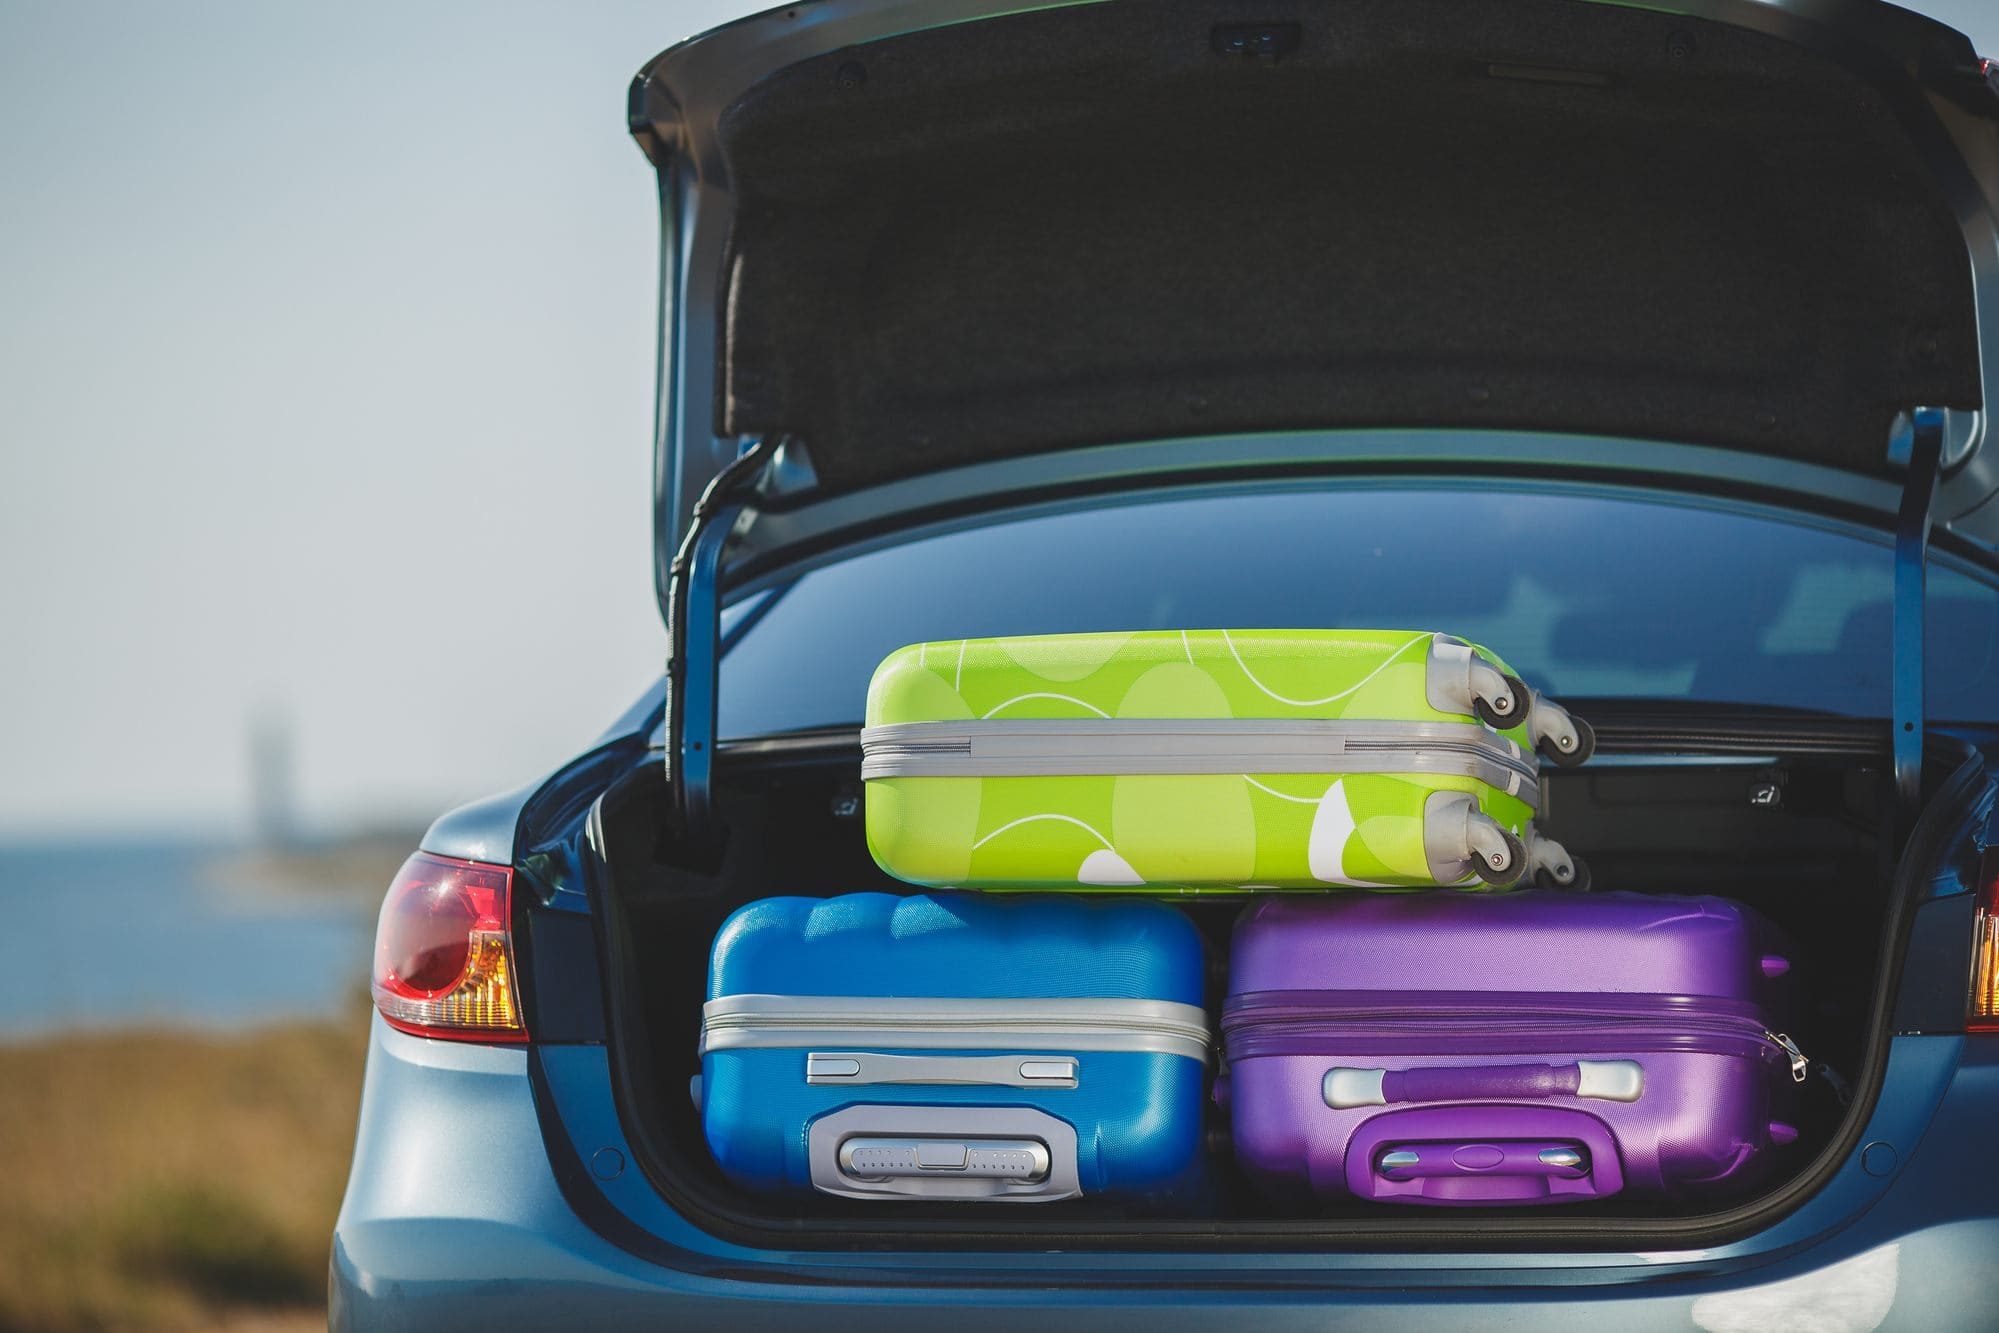 Unusual things to add to your family packing list